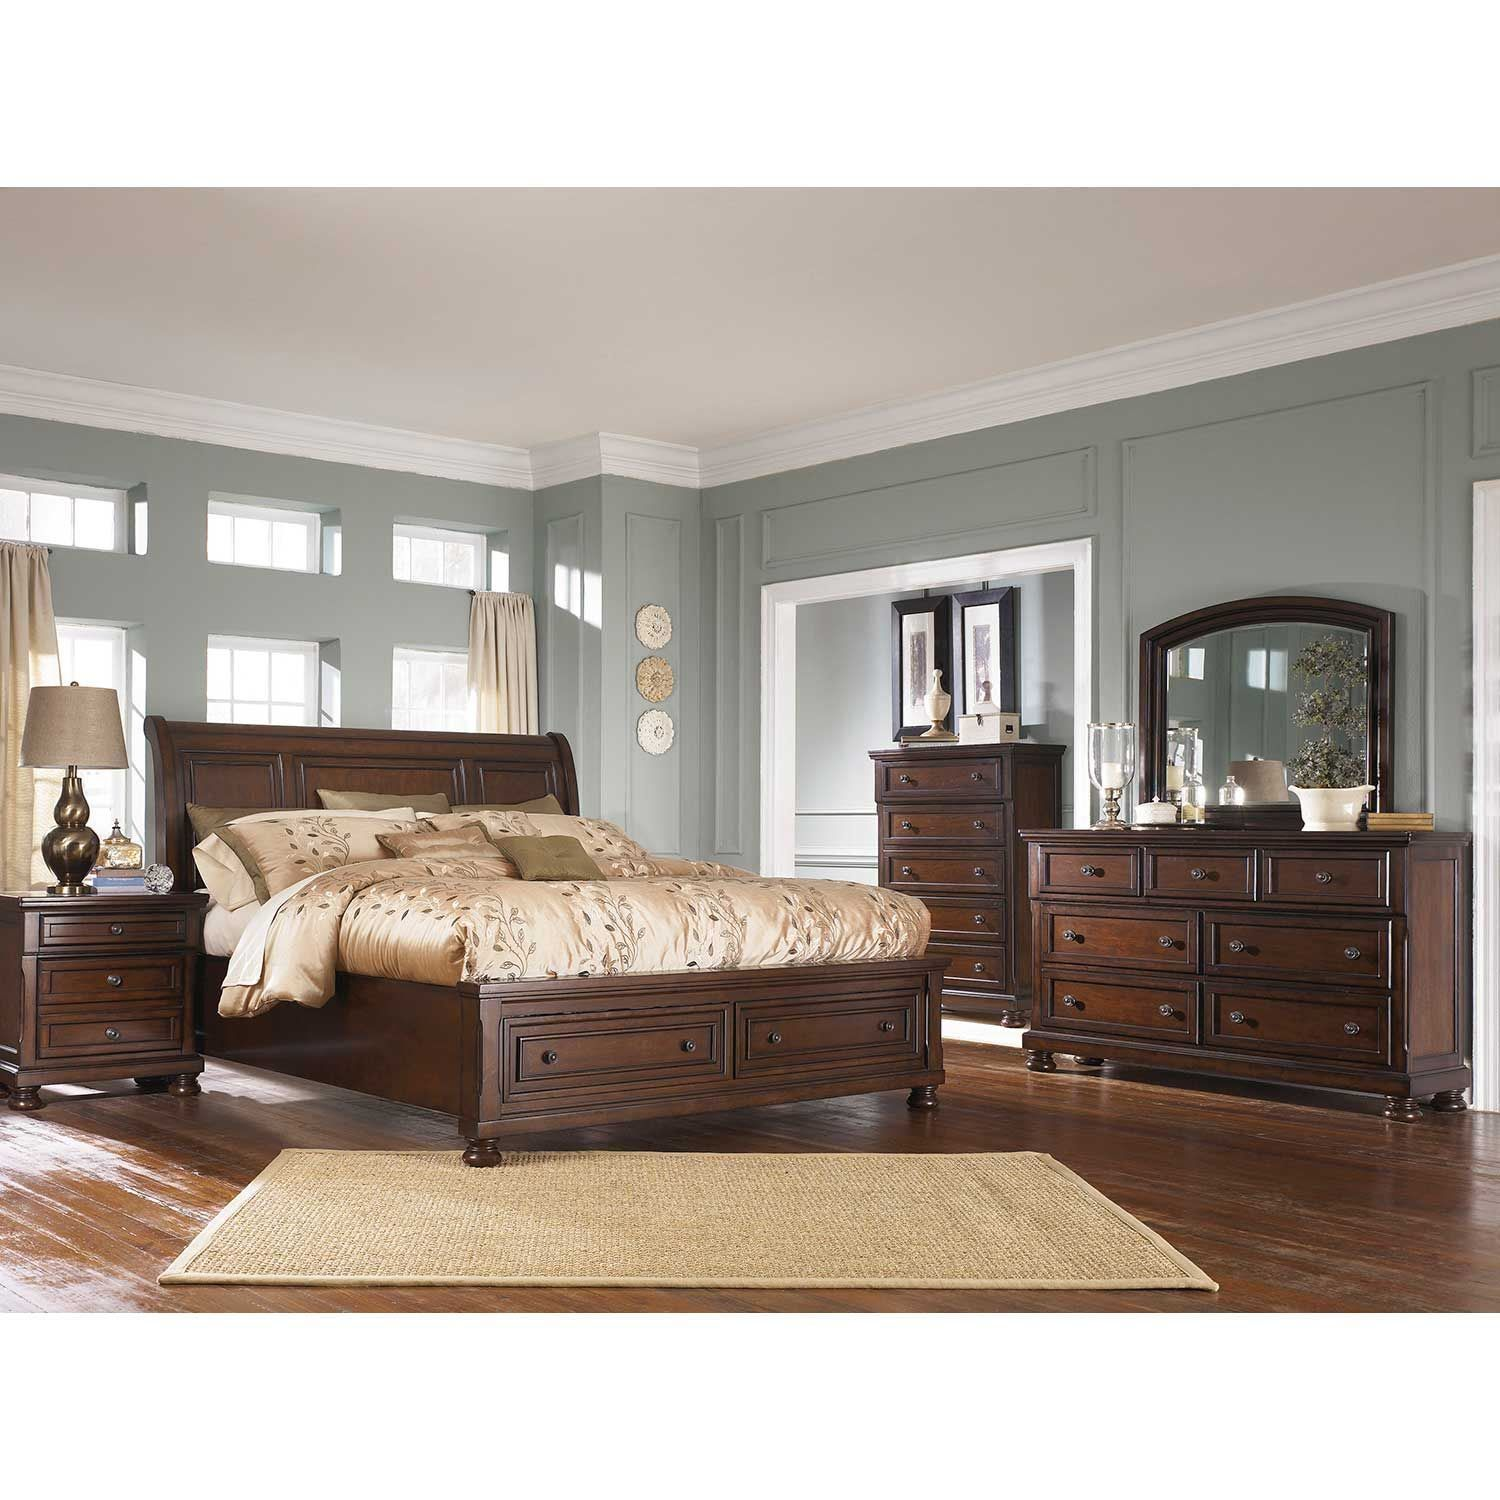 more bed check furniture ashley frames sale cool searchfororangecountyhomes rustic pin at